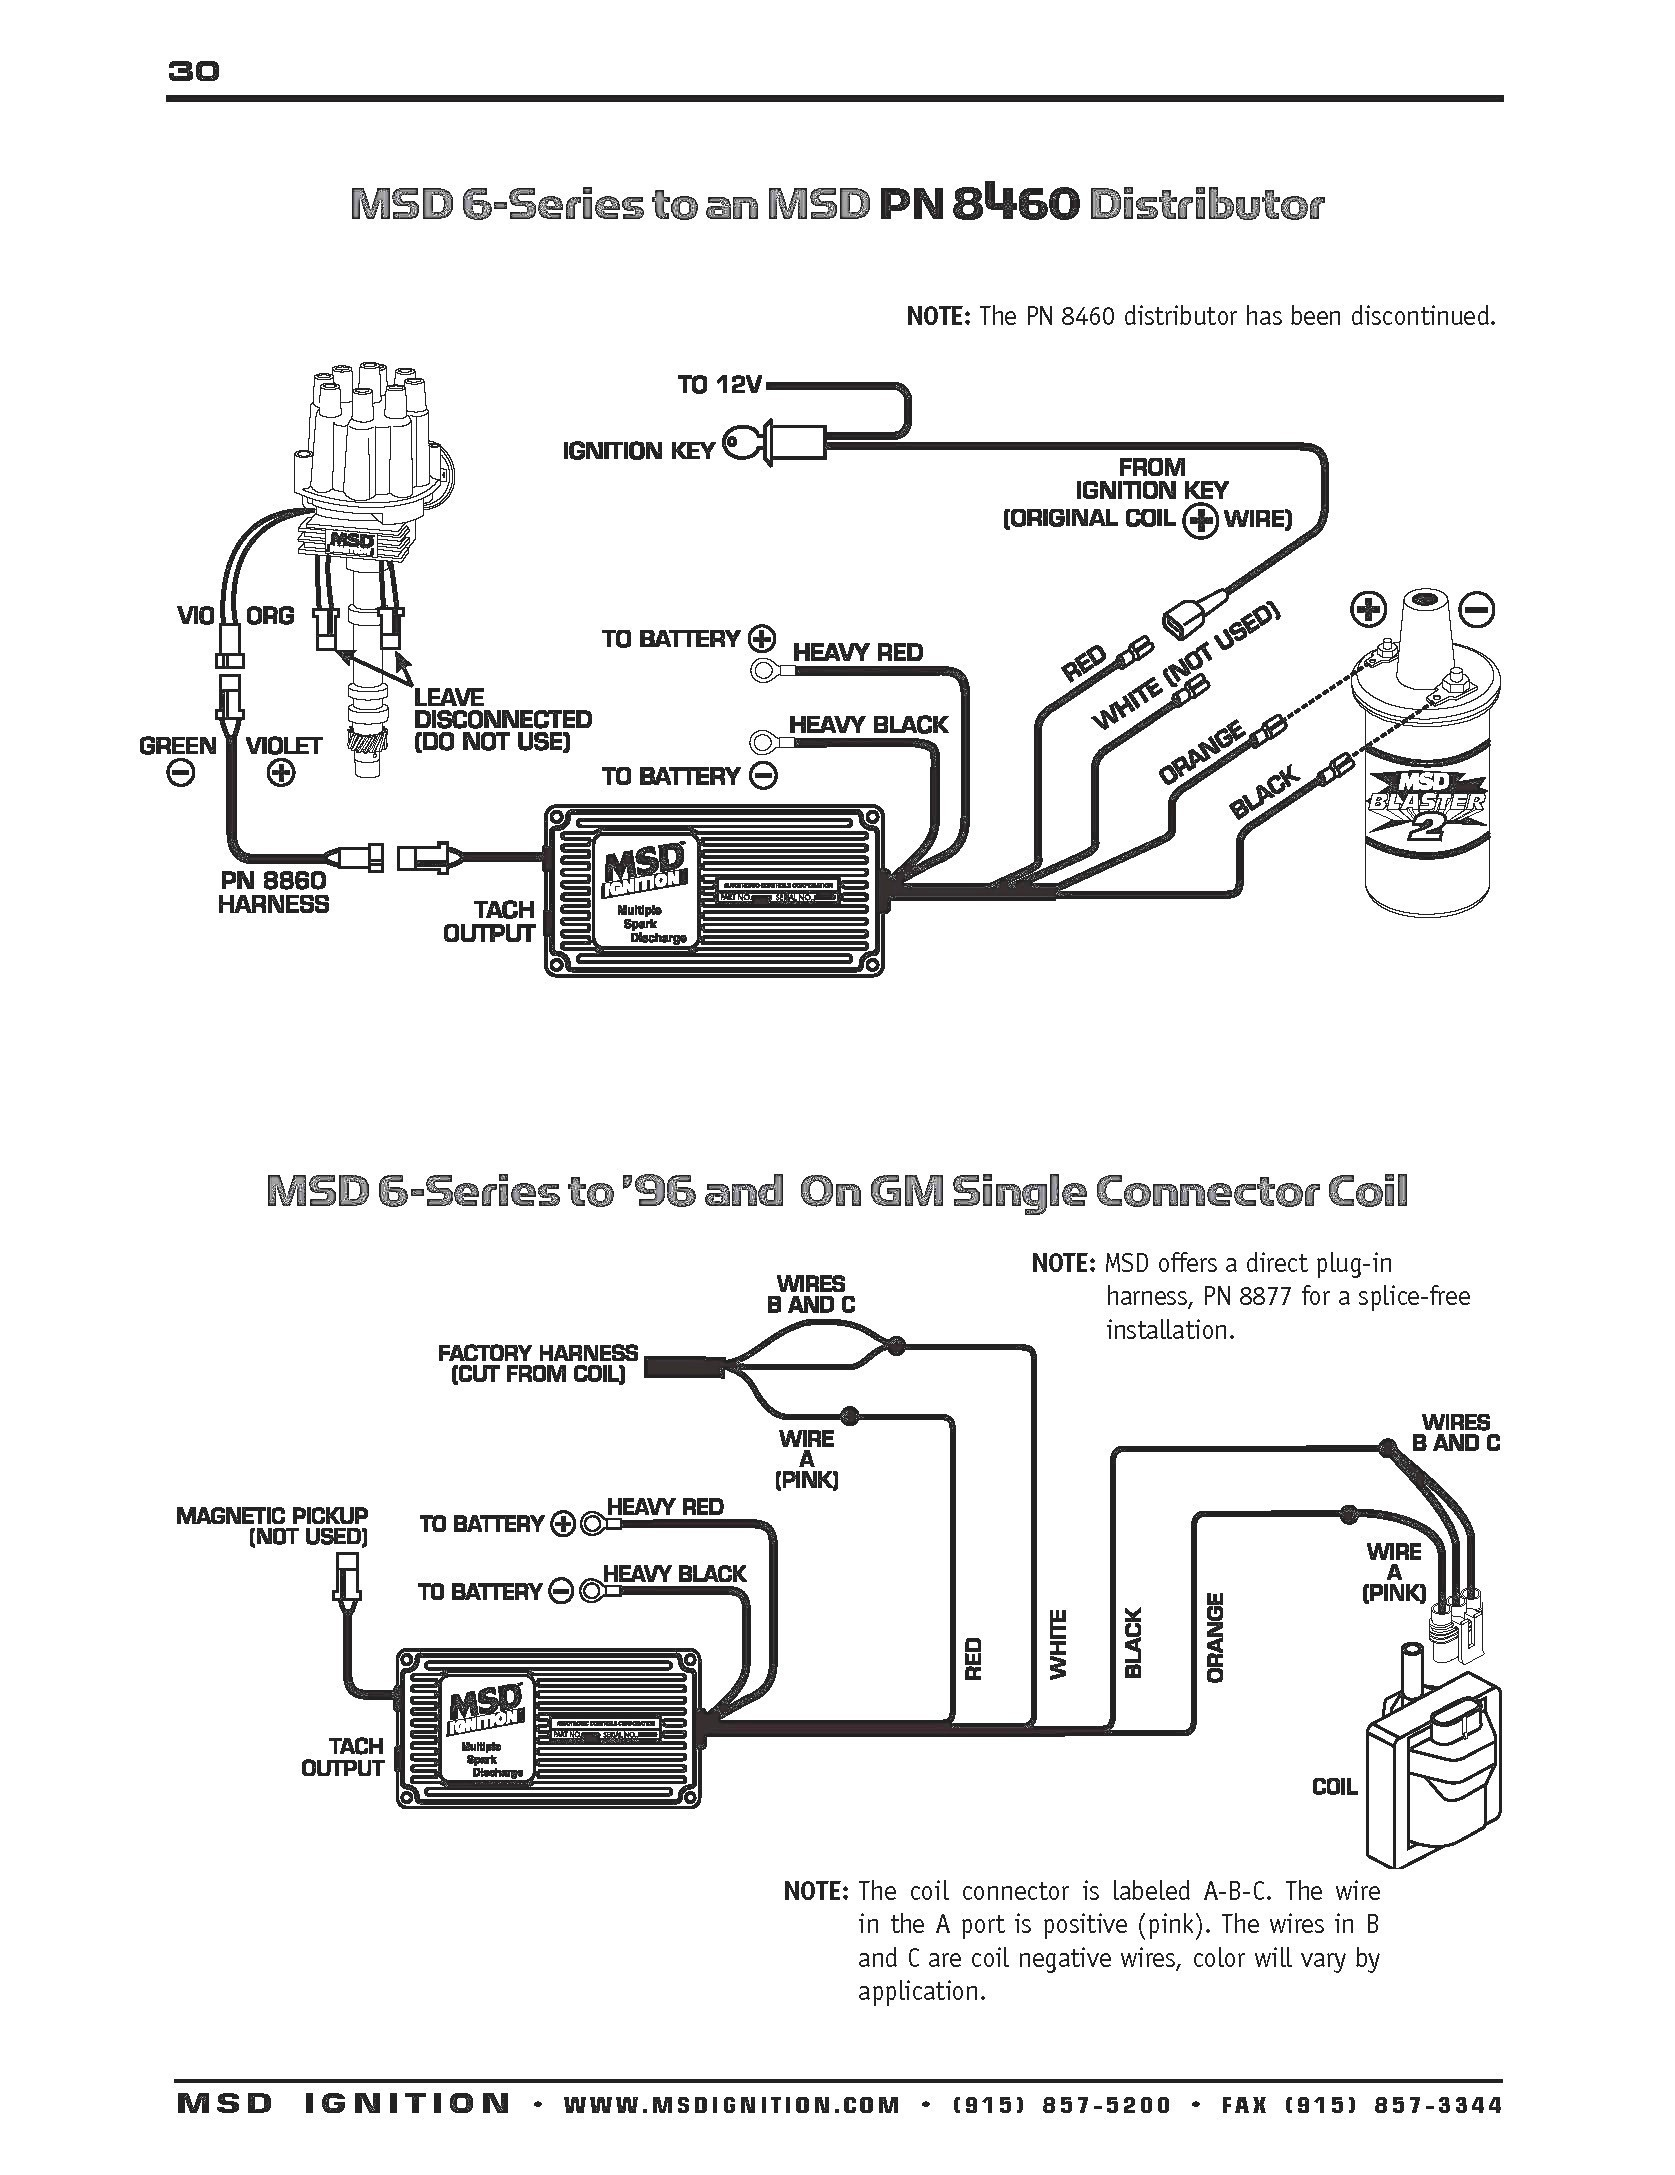 mallory ignition wiring diagram | free wiring diagram msd ignition wiring diagram dual msd ignition wiring diagram for cdi